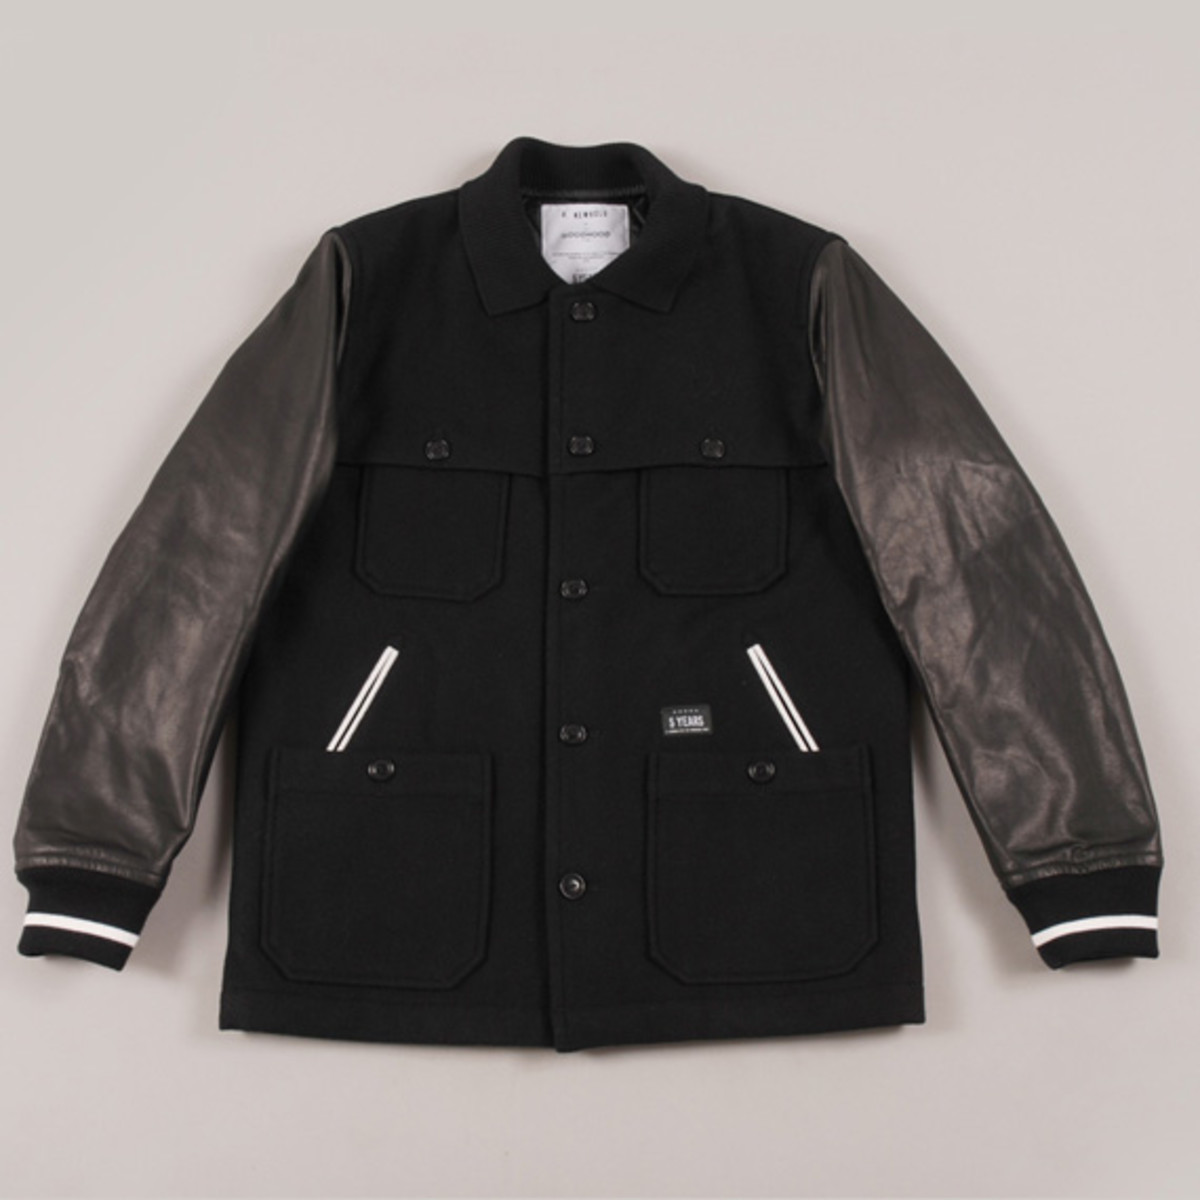 r.newbold-goodhood-5th-anniversary-collection-01